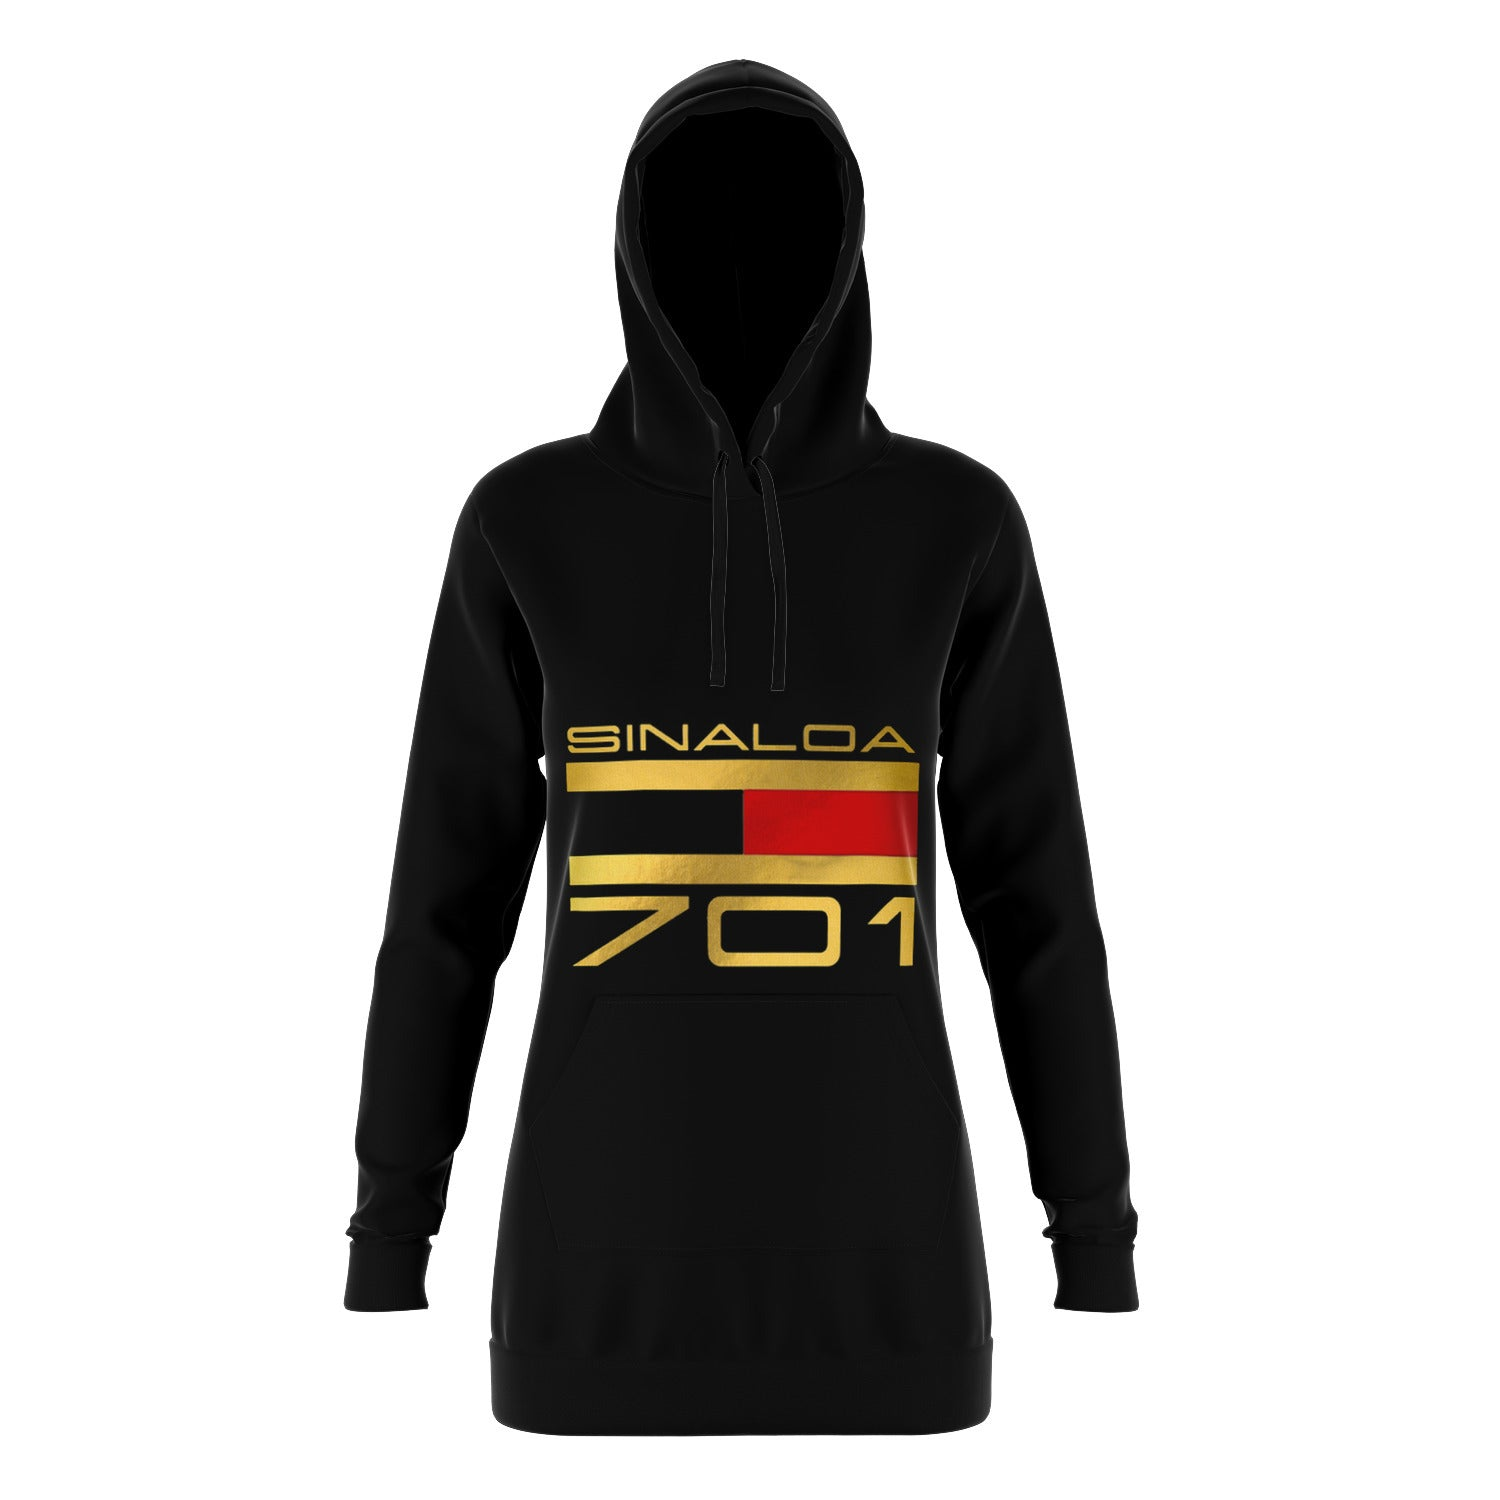 SINALOA 701 HOODIE DRESS (LADIES)